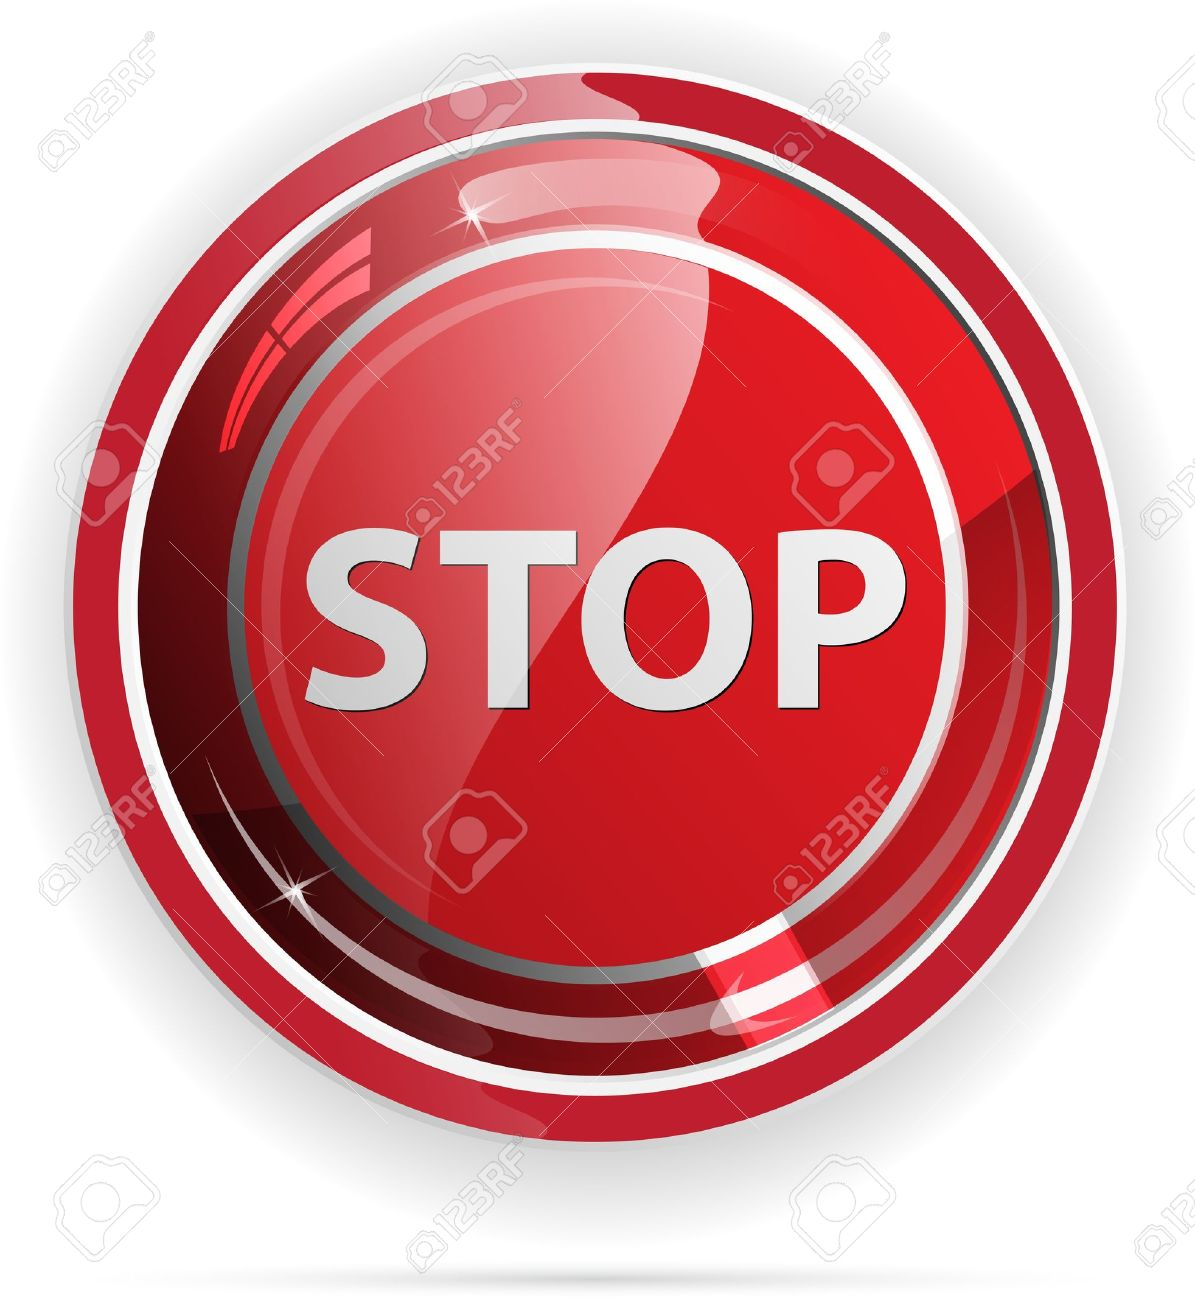 Glossy stop sign button for web applications. Stock Vector - 12046522